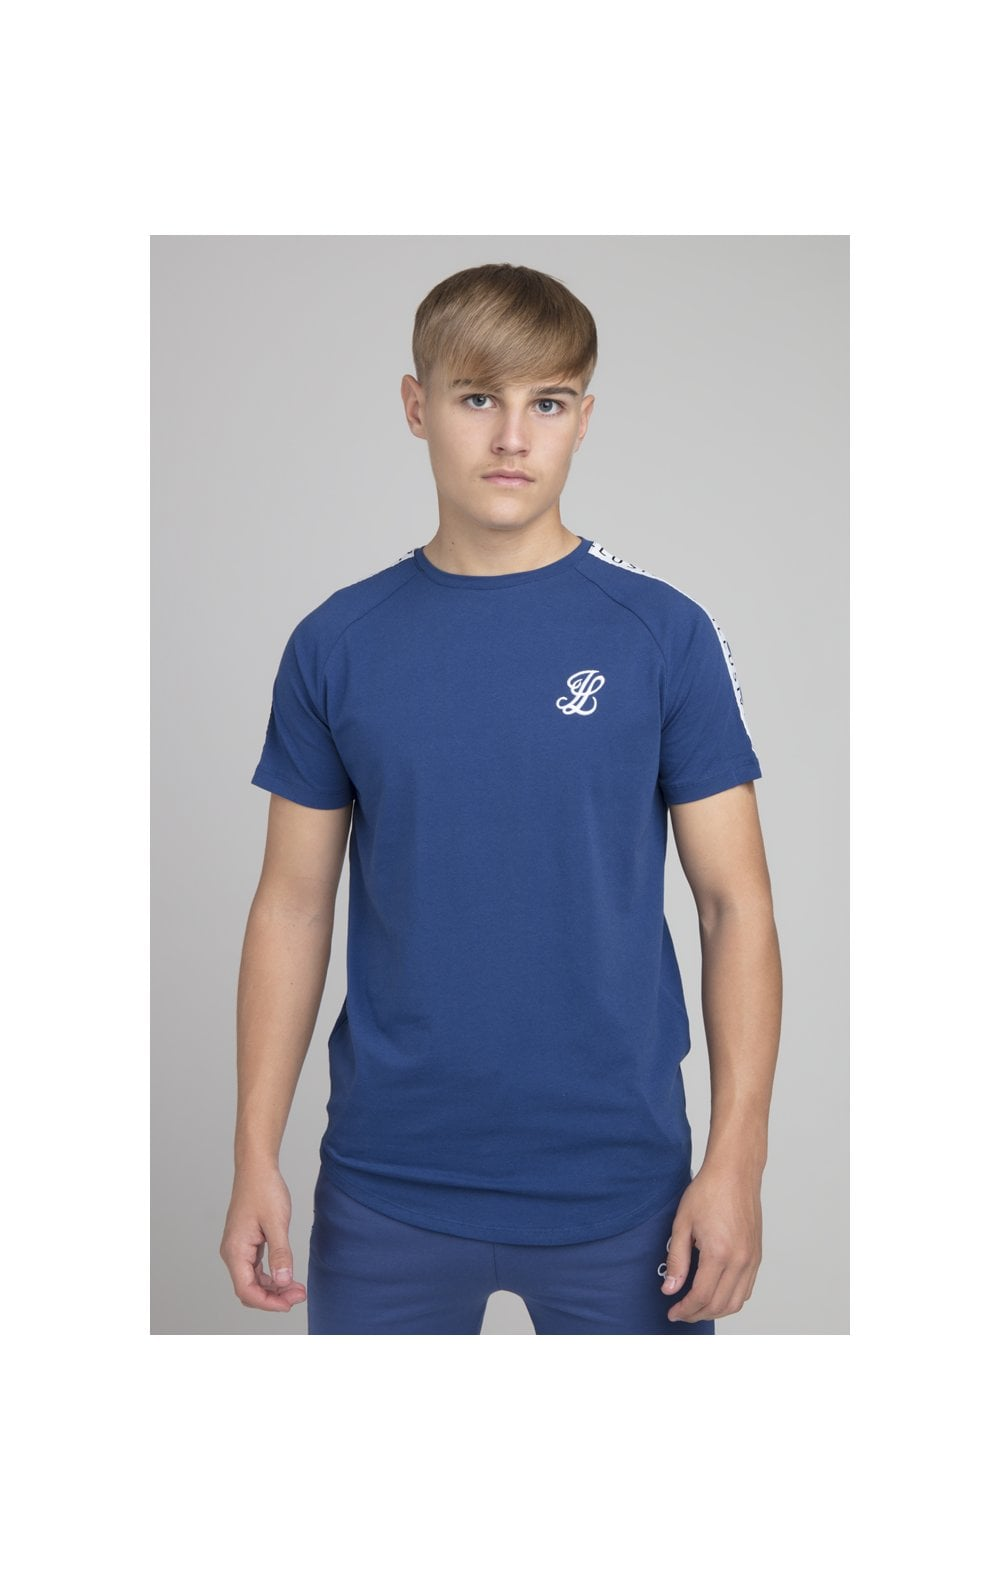 Illusive London Taped Core Tee - Royal Blue